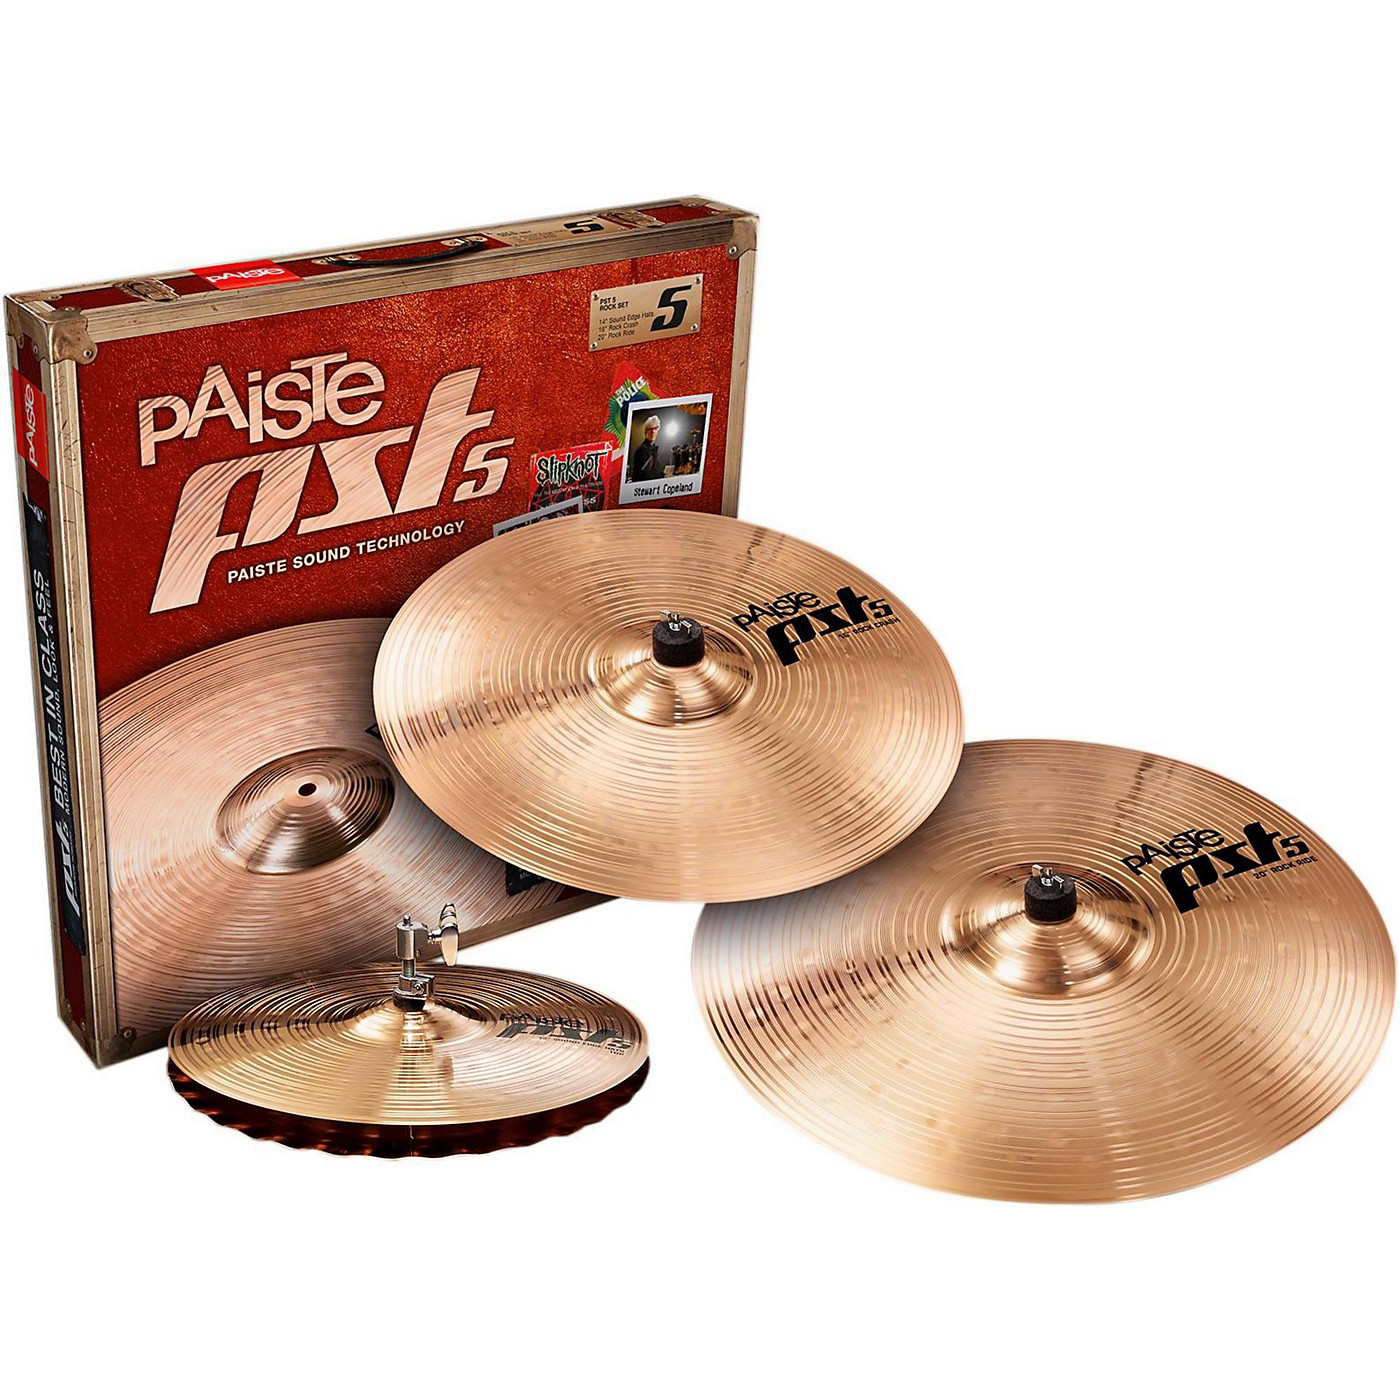 Paiste PST 5 Rock Set thumbnail